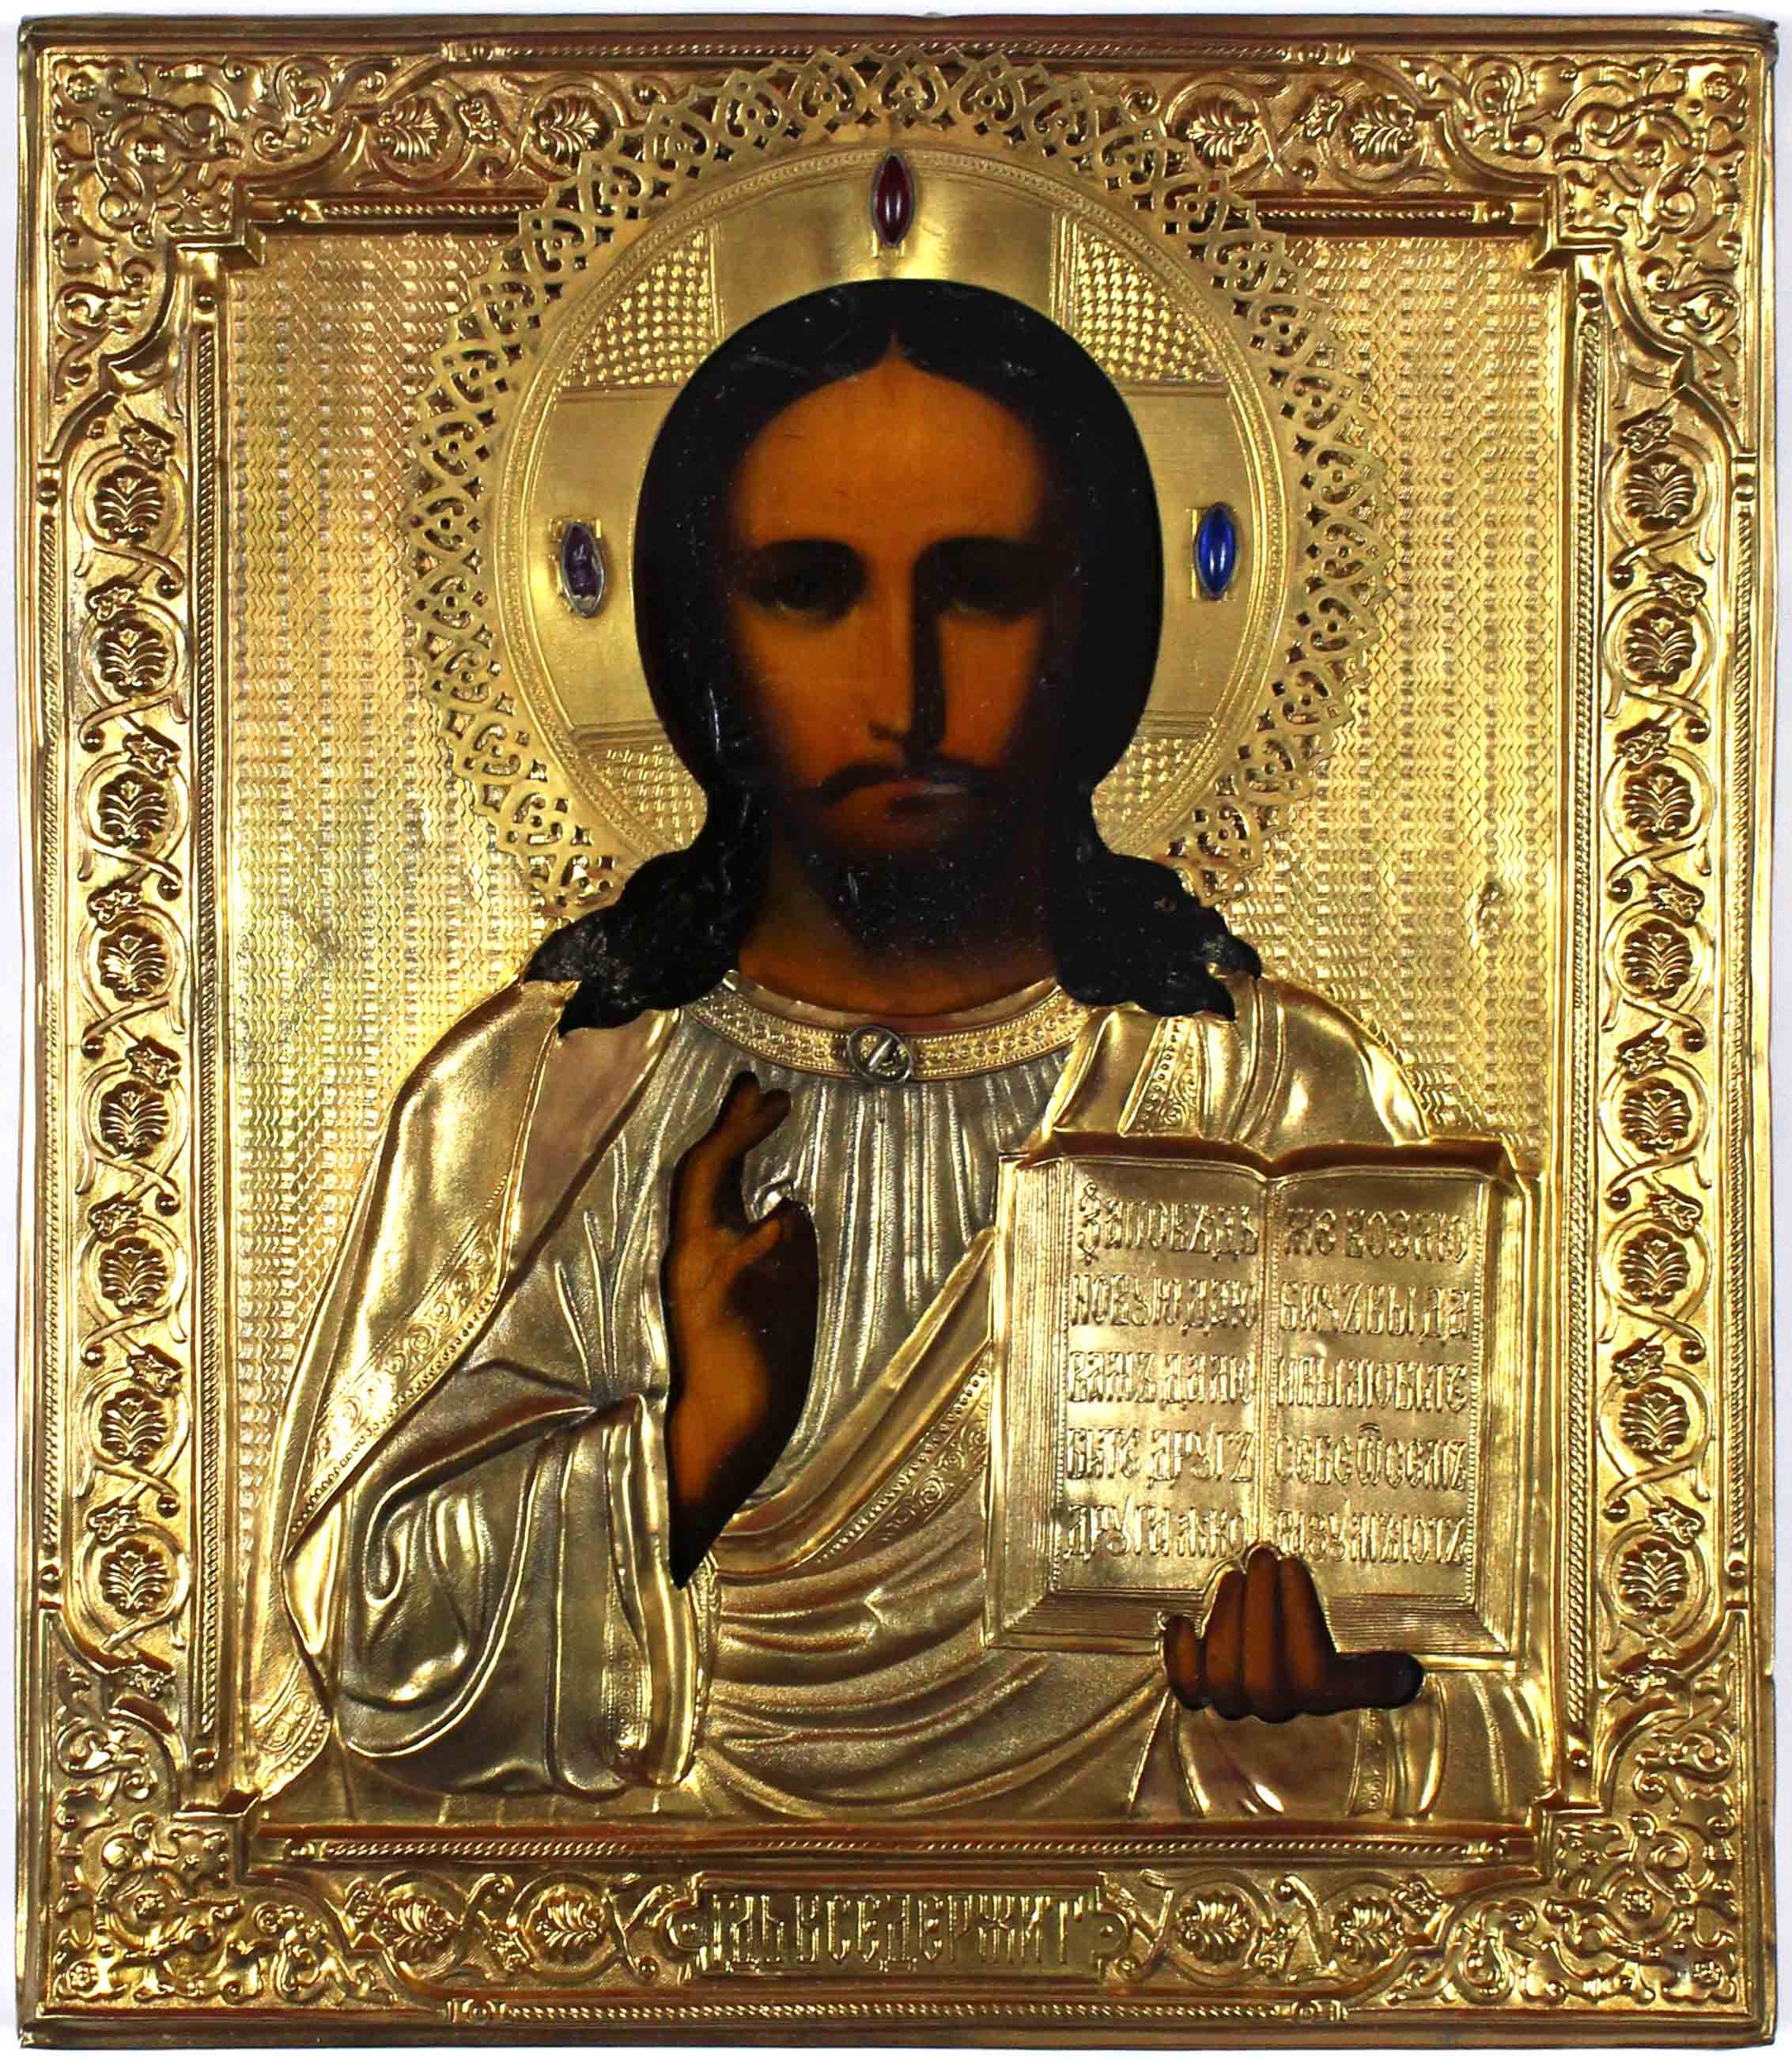 An icon of Christ Pantocrator. Interestingly, icons are not painted but written. #icon #religion #christ